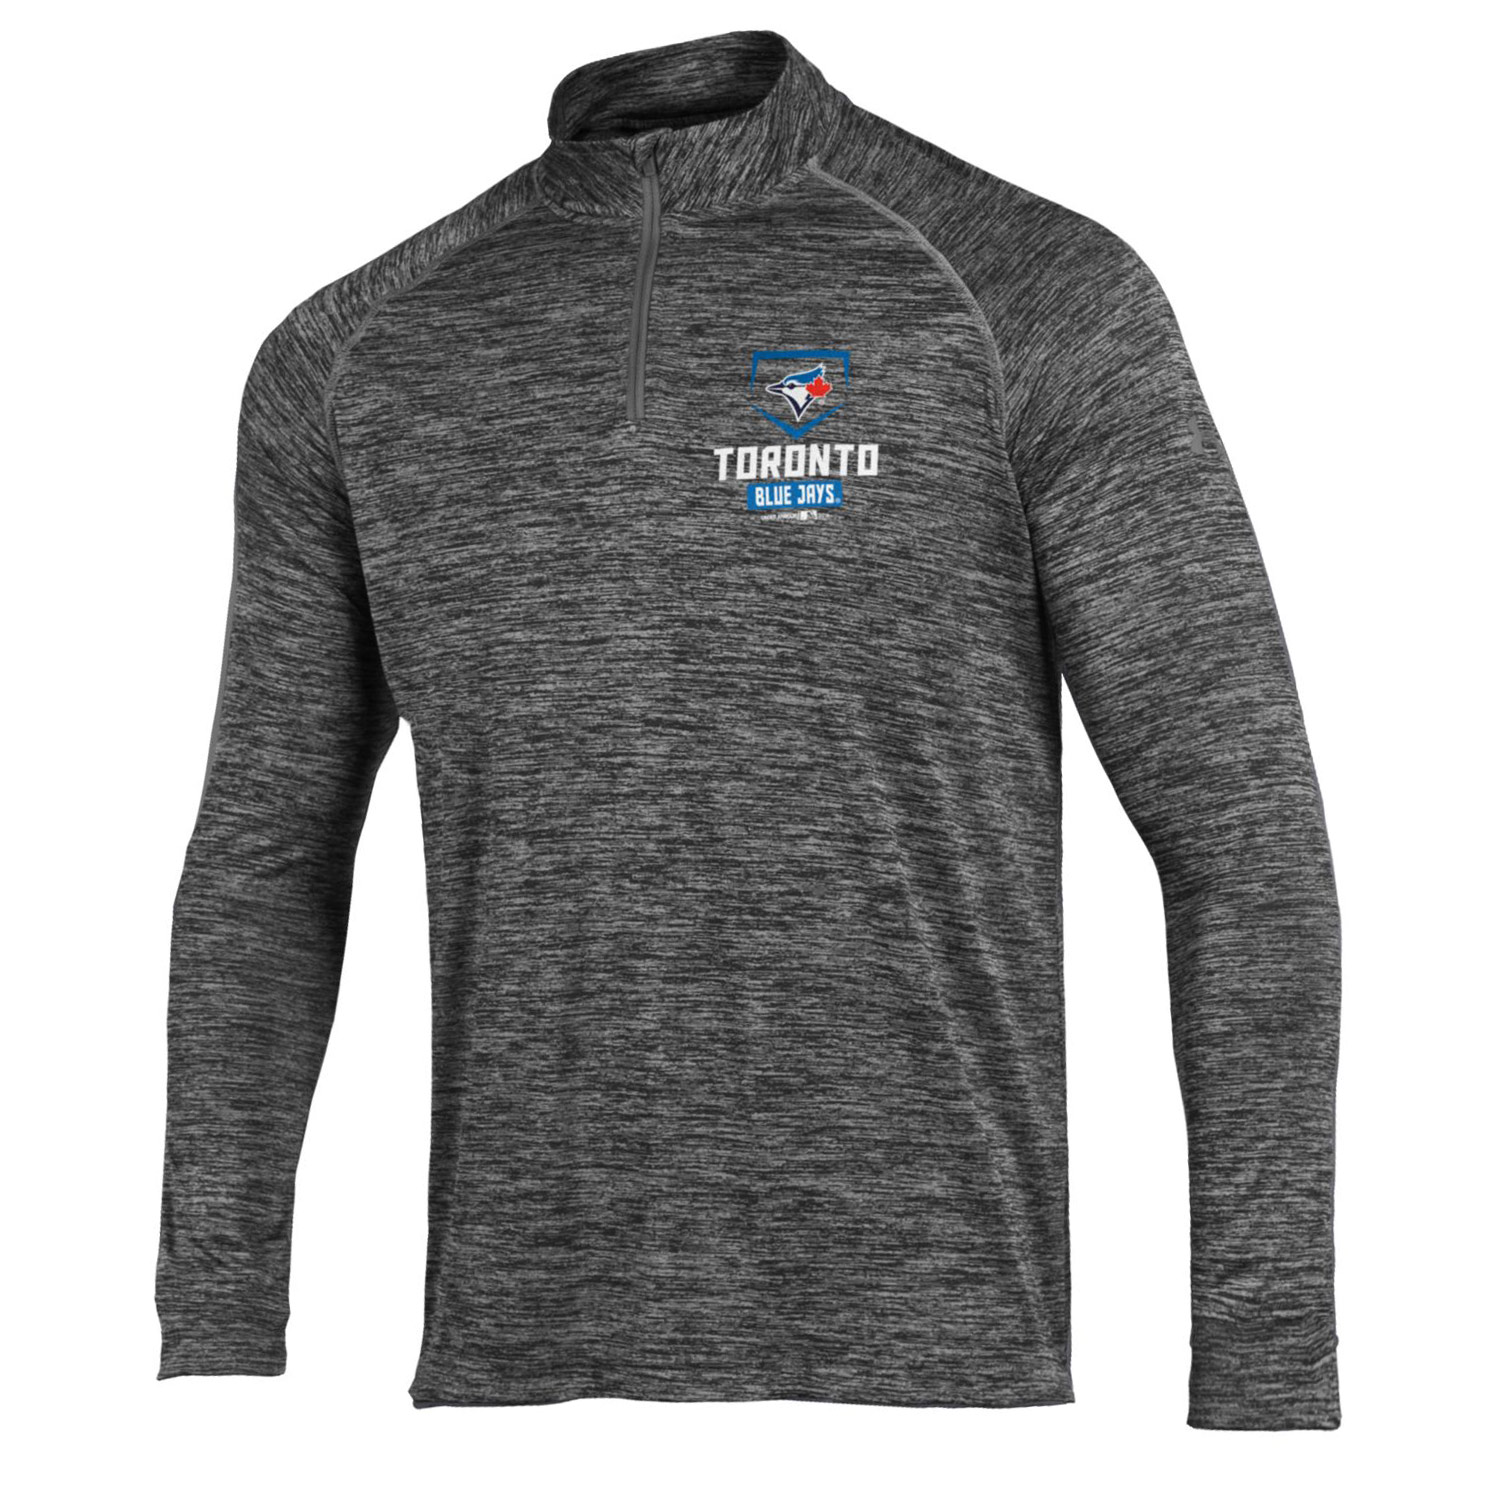 Toronto Blue Jays Under Armour Tech Quarter-Zip Performance Pullover - Charcoal